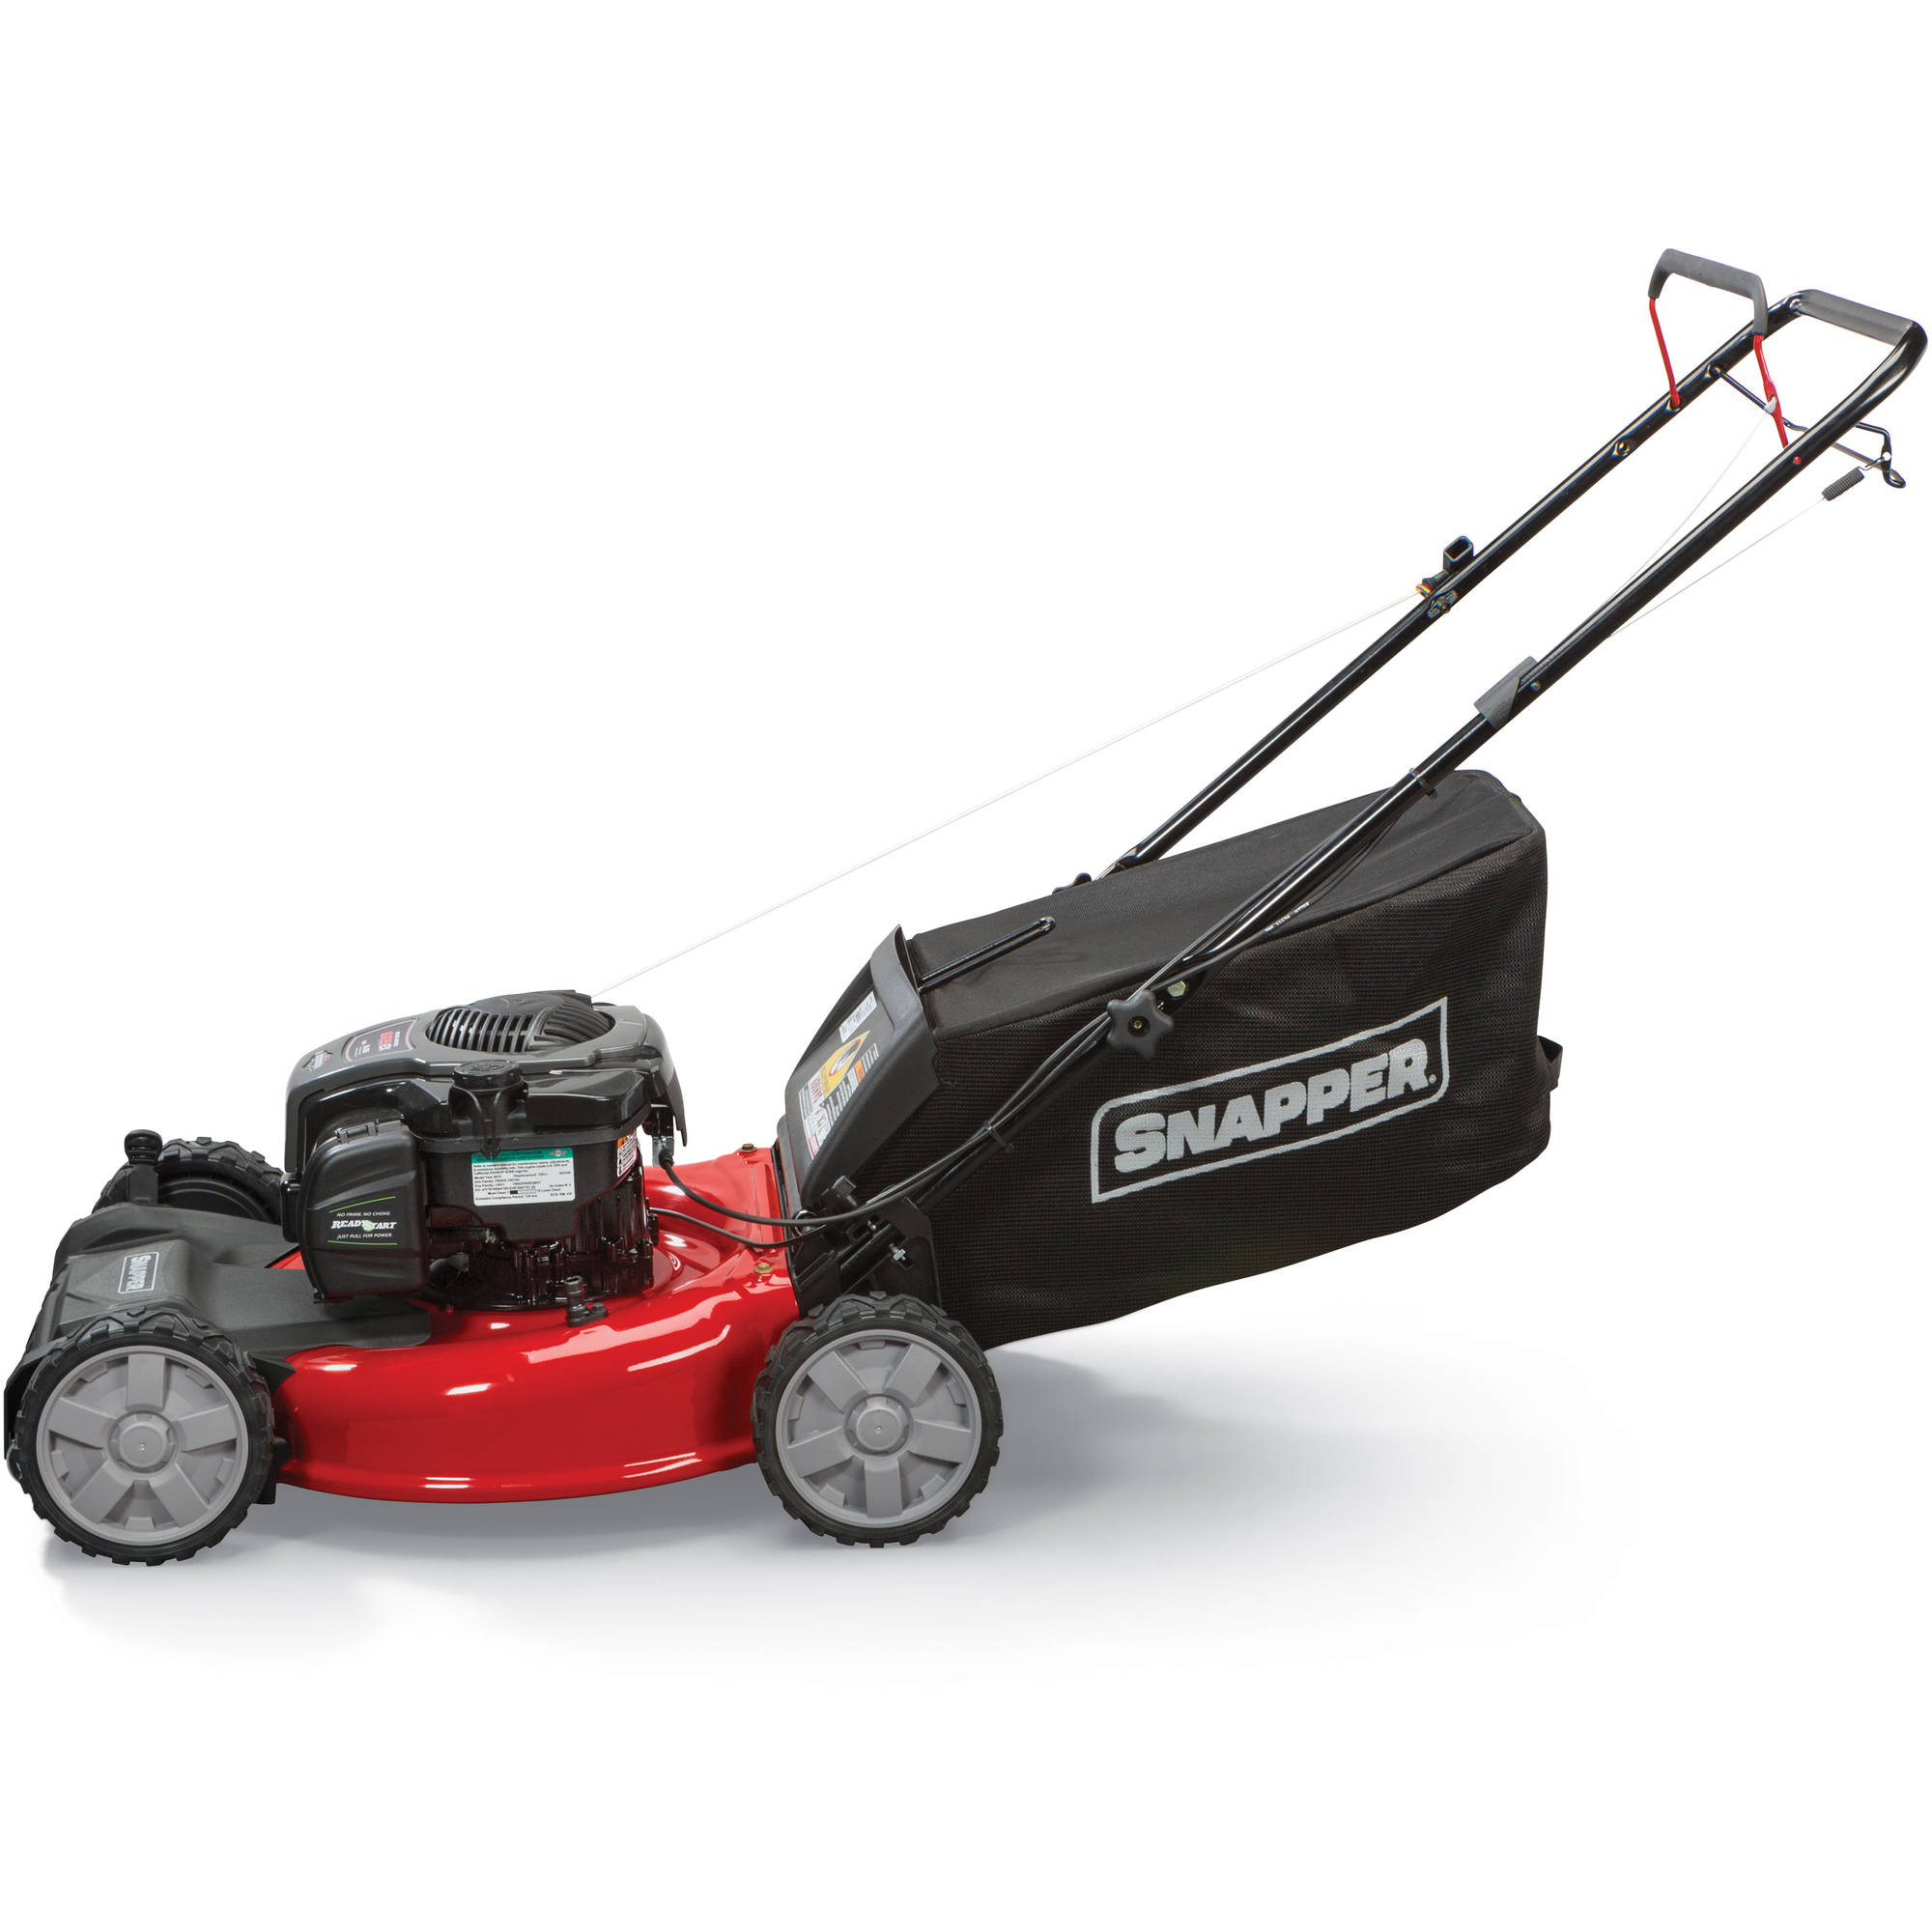 thank auto graphic mike general bilt for manual engine parts choke need repair mower troy honda on lawn purpose you small